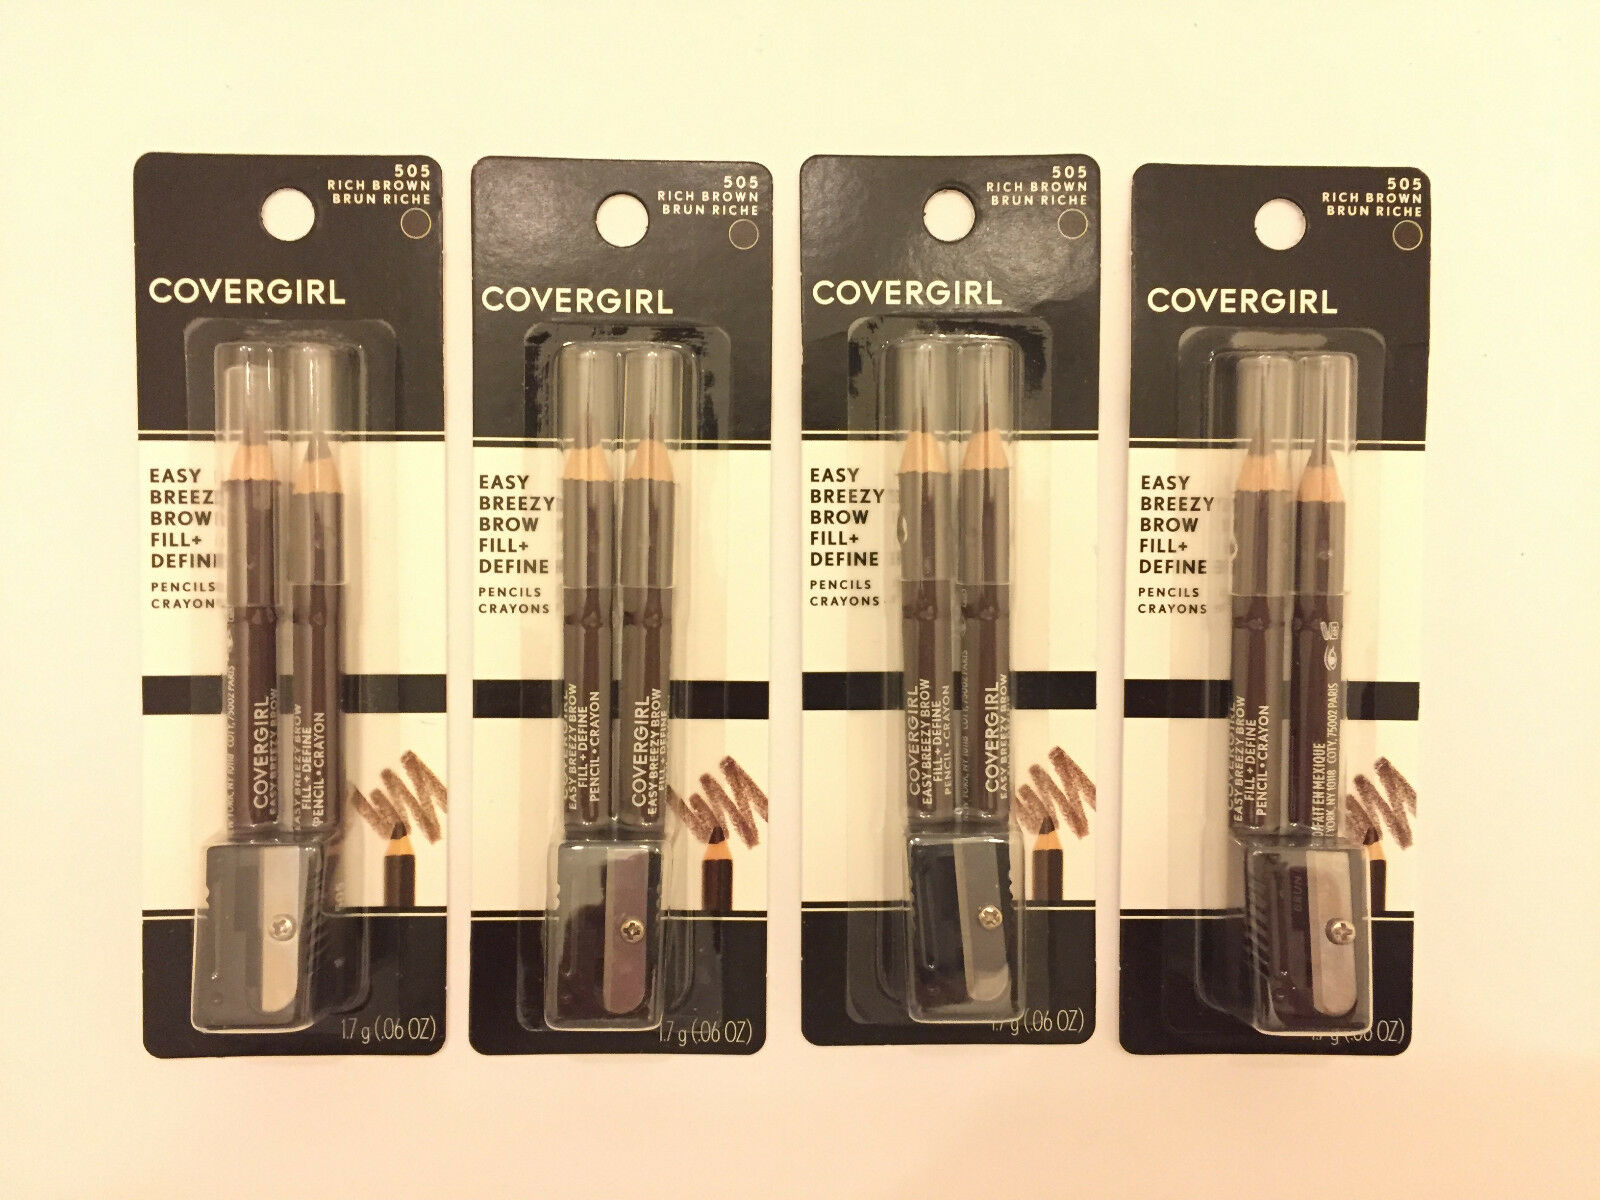 COVERGIRL Easy Breezy Brow Fill+Define Pencils,  Rich Brown,